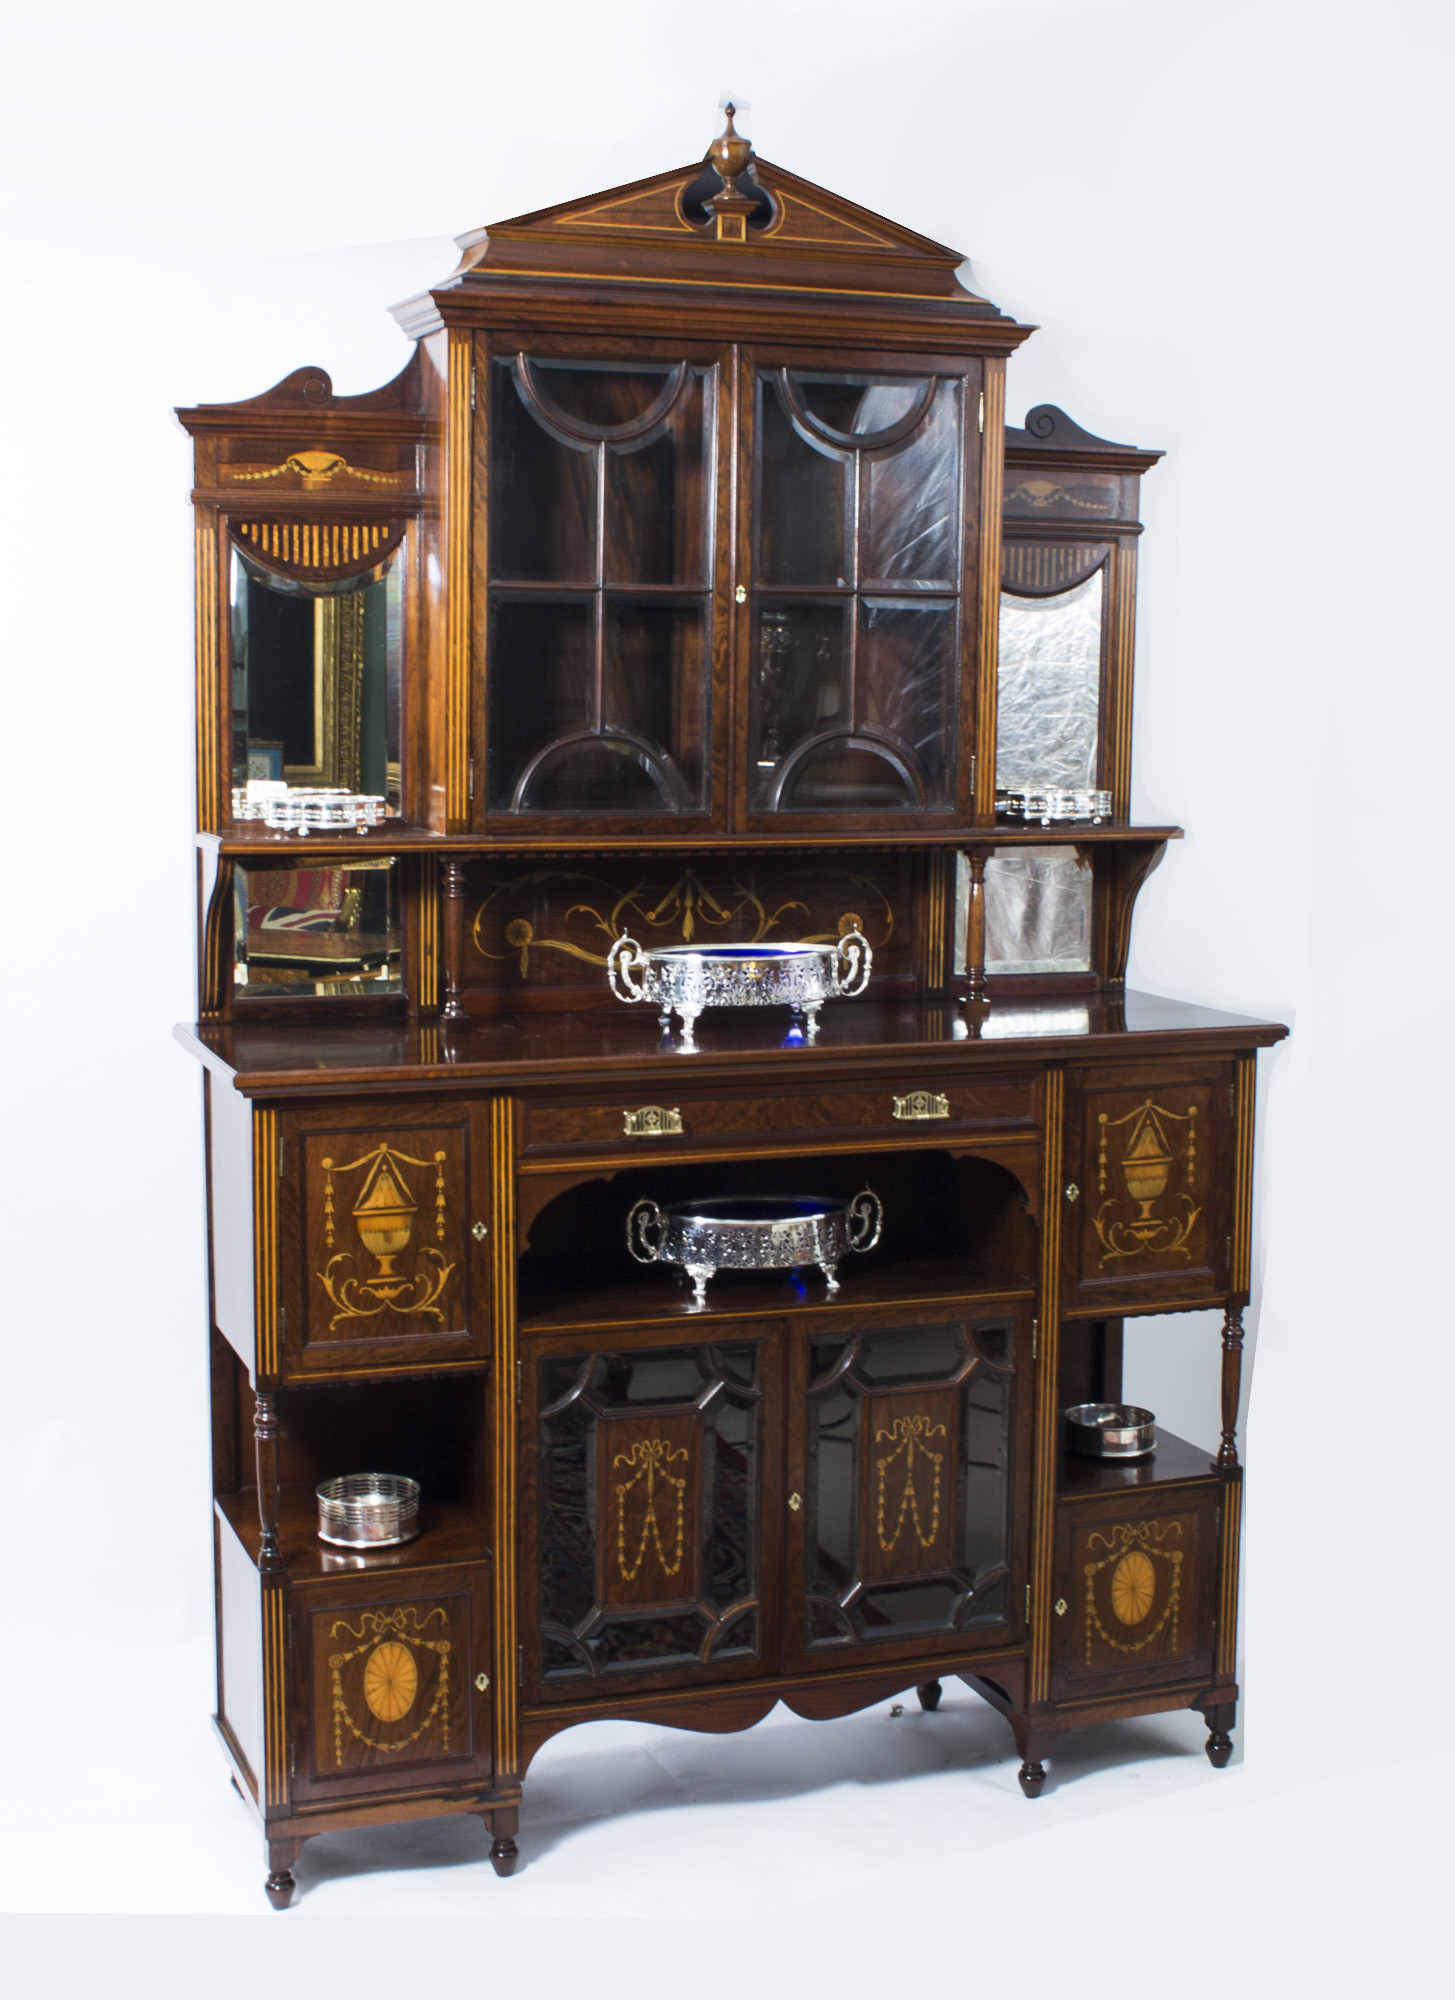 Regent antiques display cabinets antique edwardian for 1890 kitchen cabinets